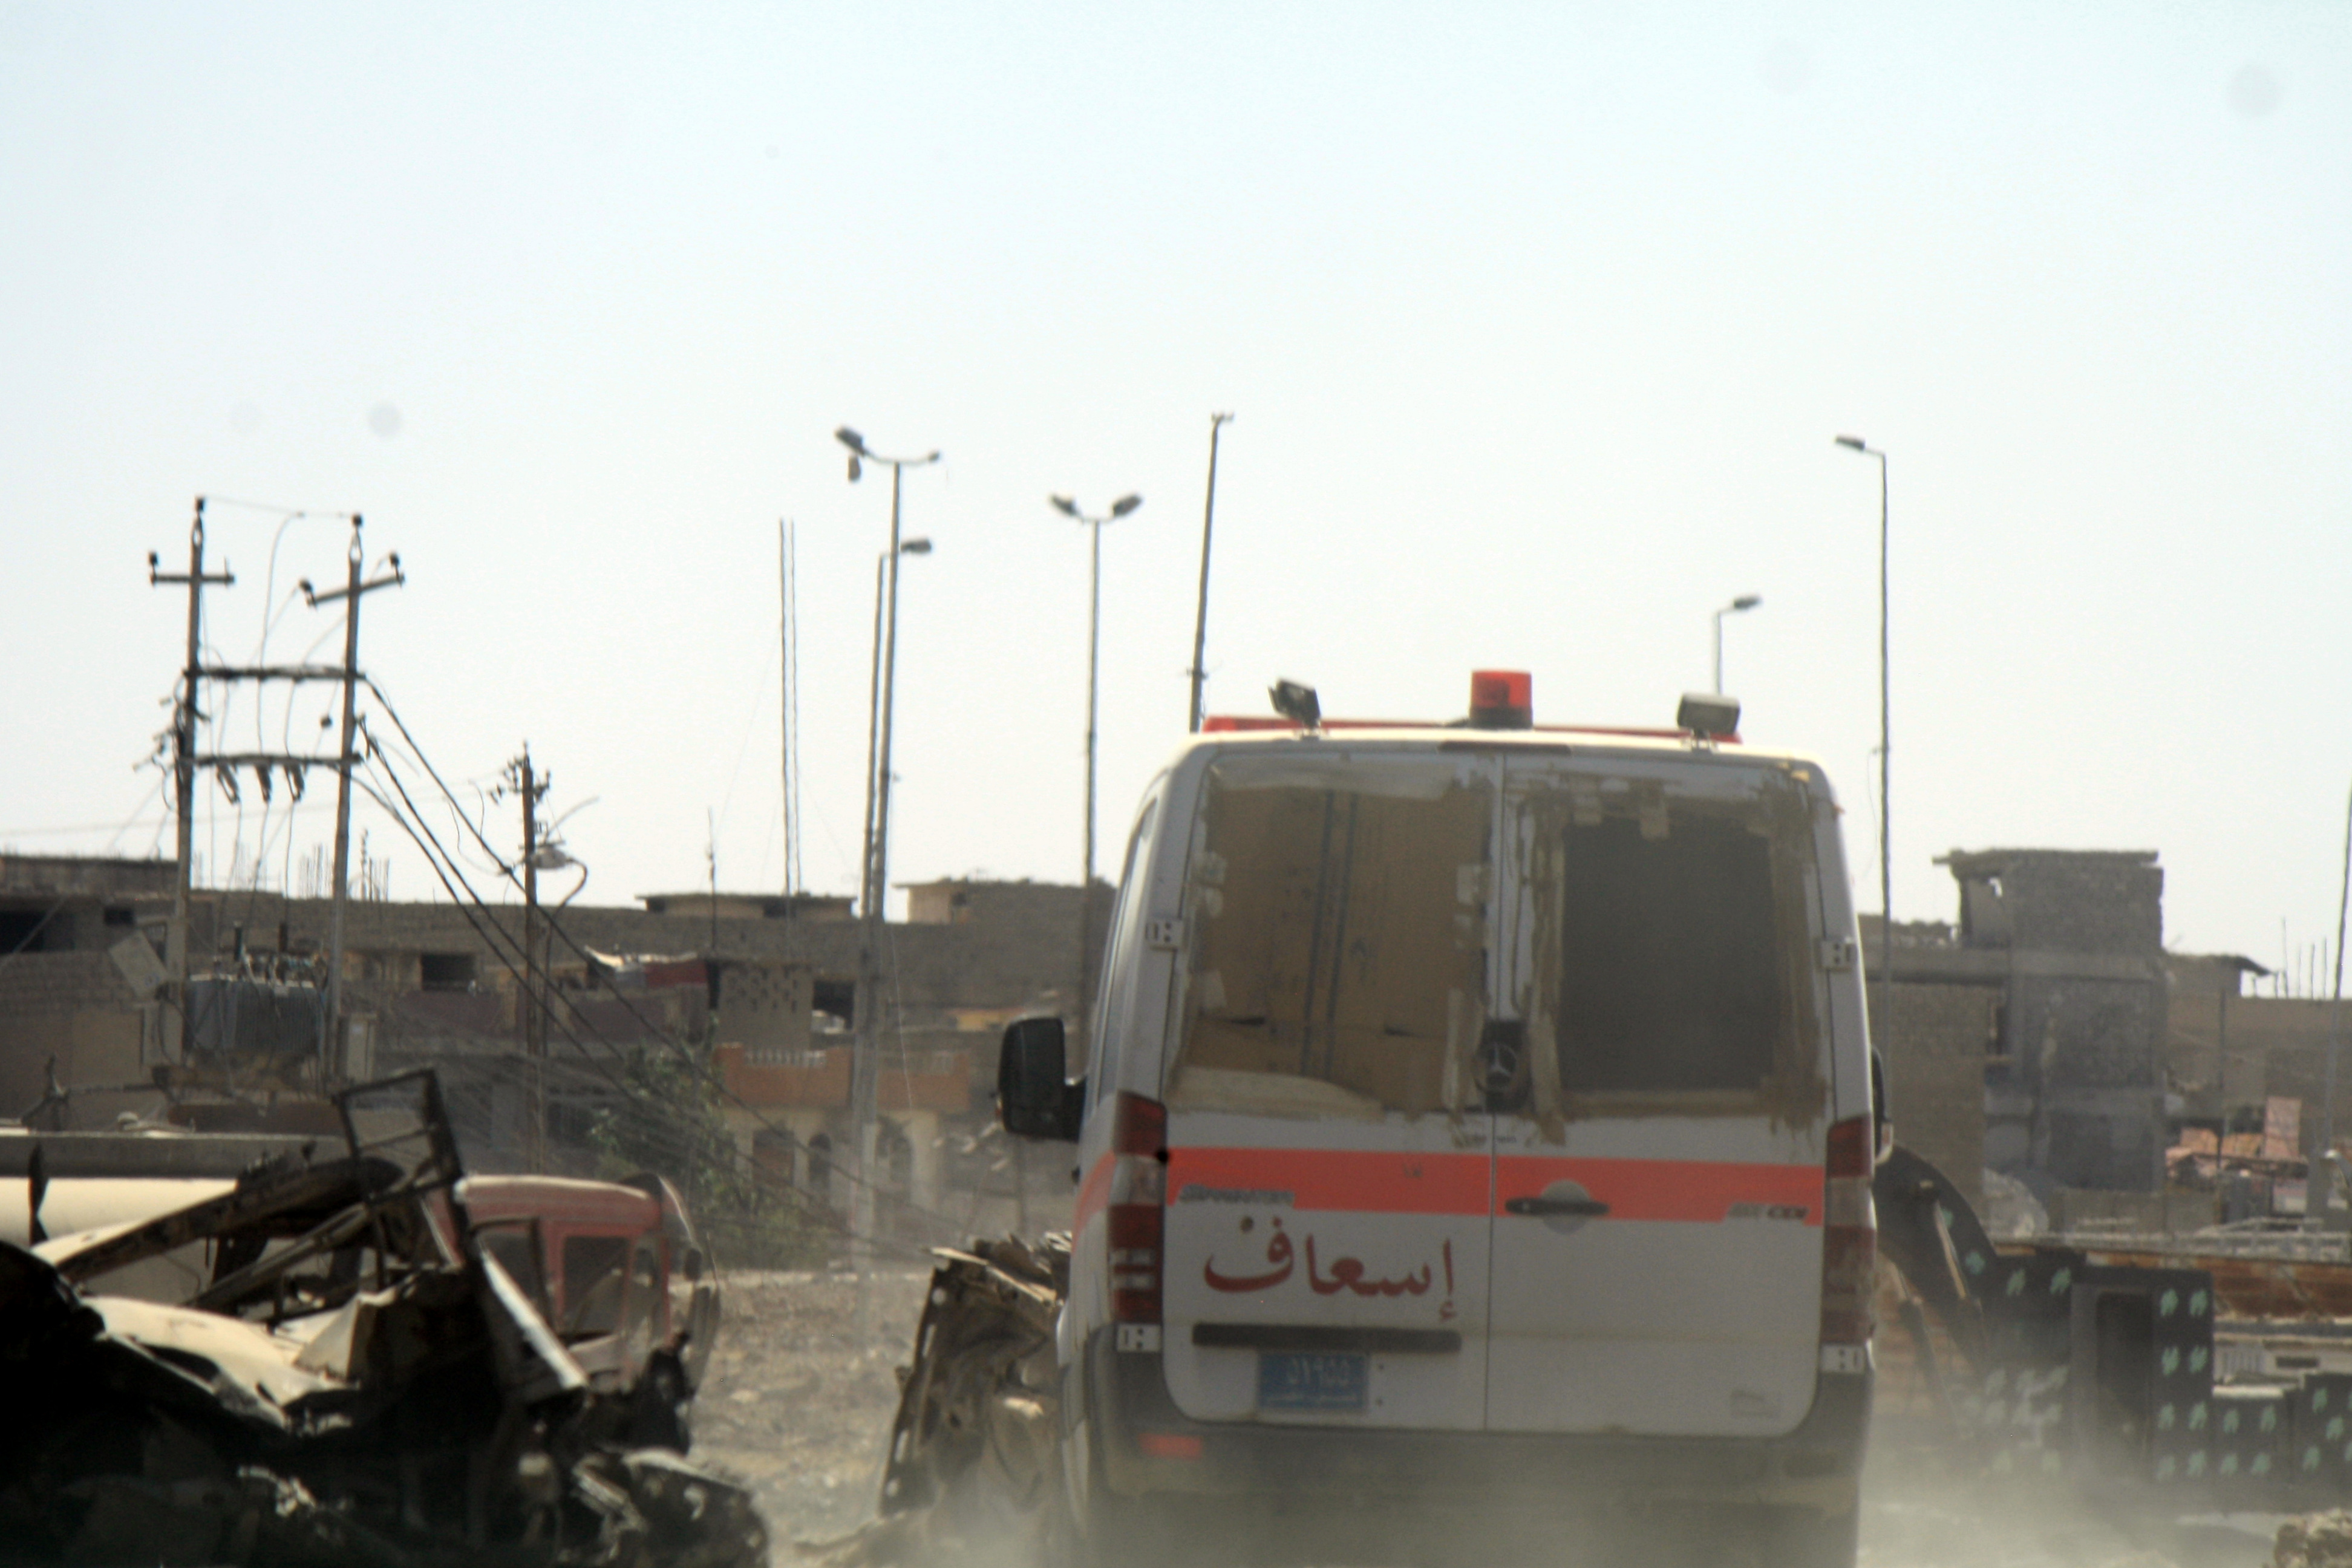 Iraqi health services are already pushed to the brink with hundreds of thousands of displaced people living in harsh conditions and more families fleeing daily, sometimes arriving with gunshot wounds in Mosul, Iraq.